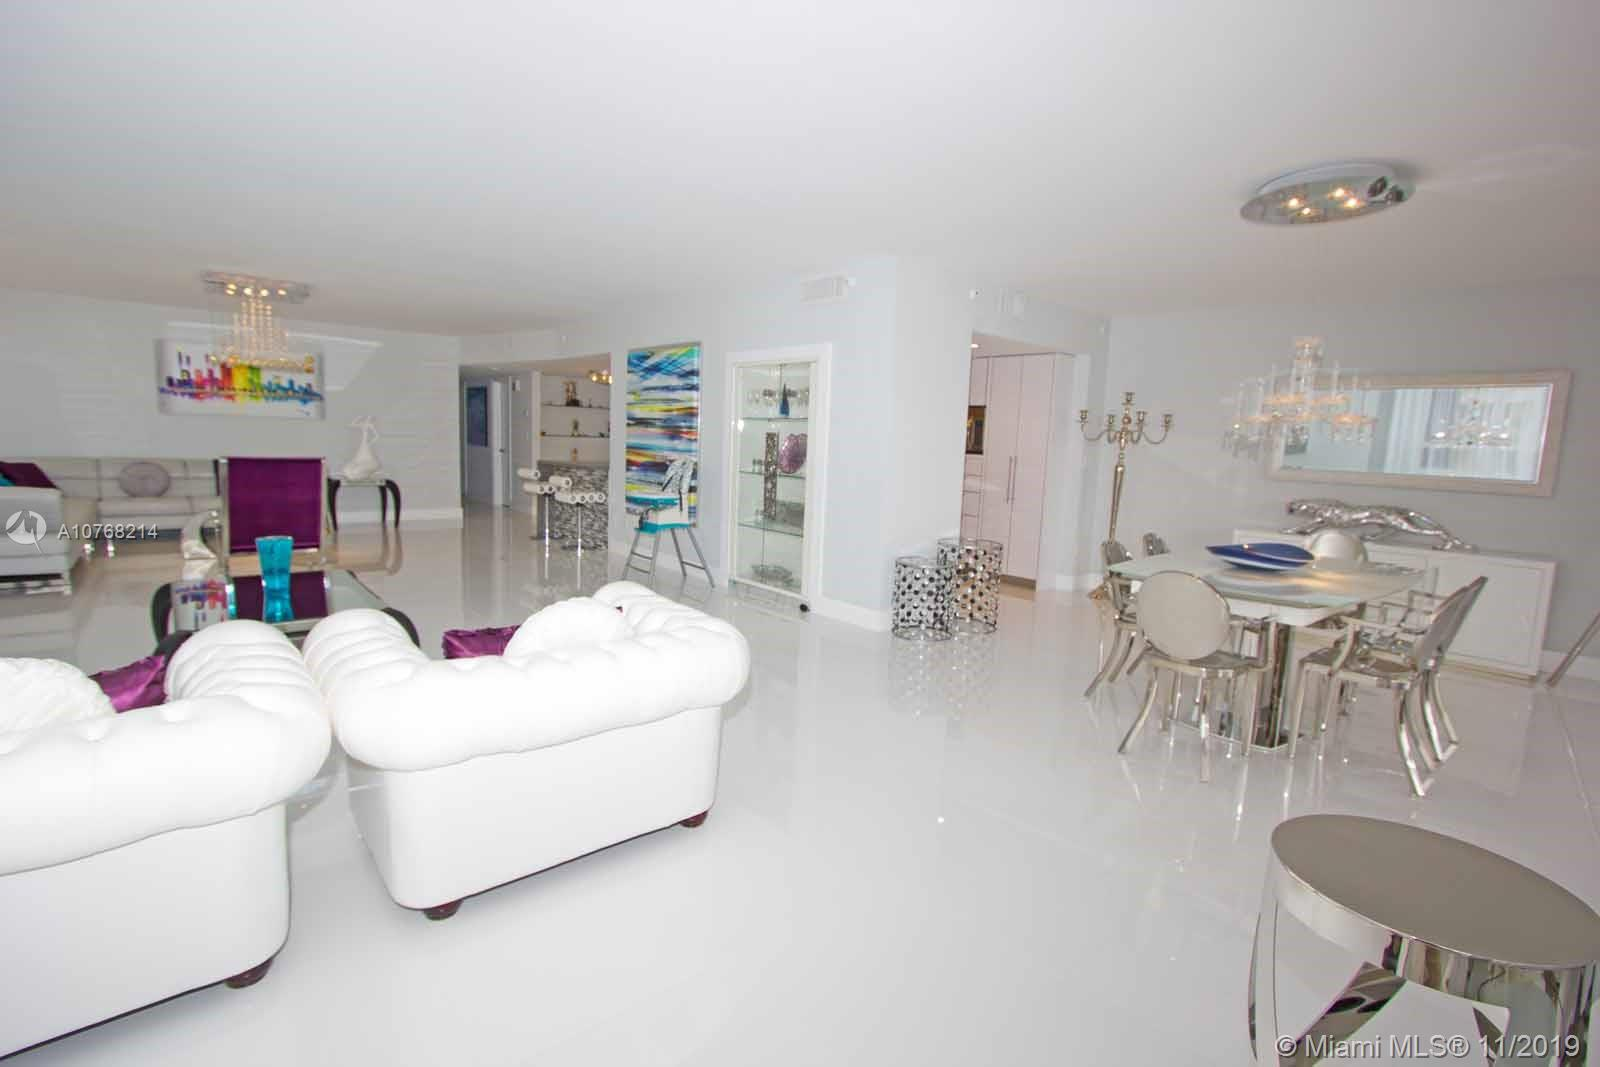 10175 Collins Ave, 102 - Bal Harbour, Florida